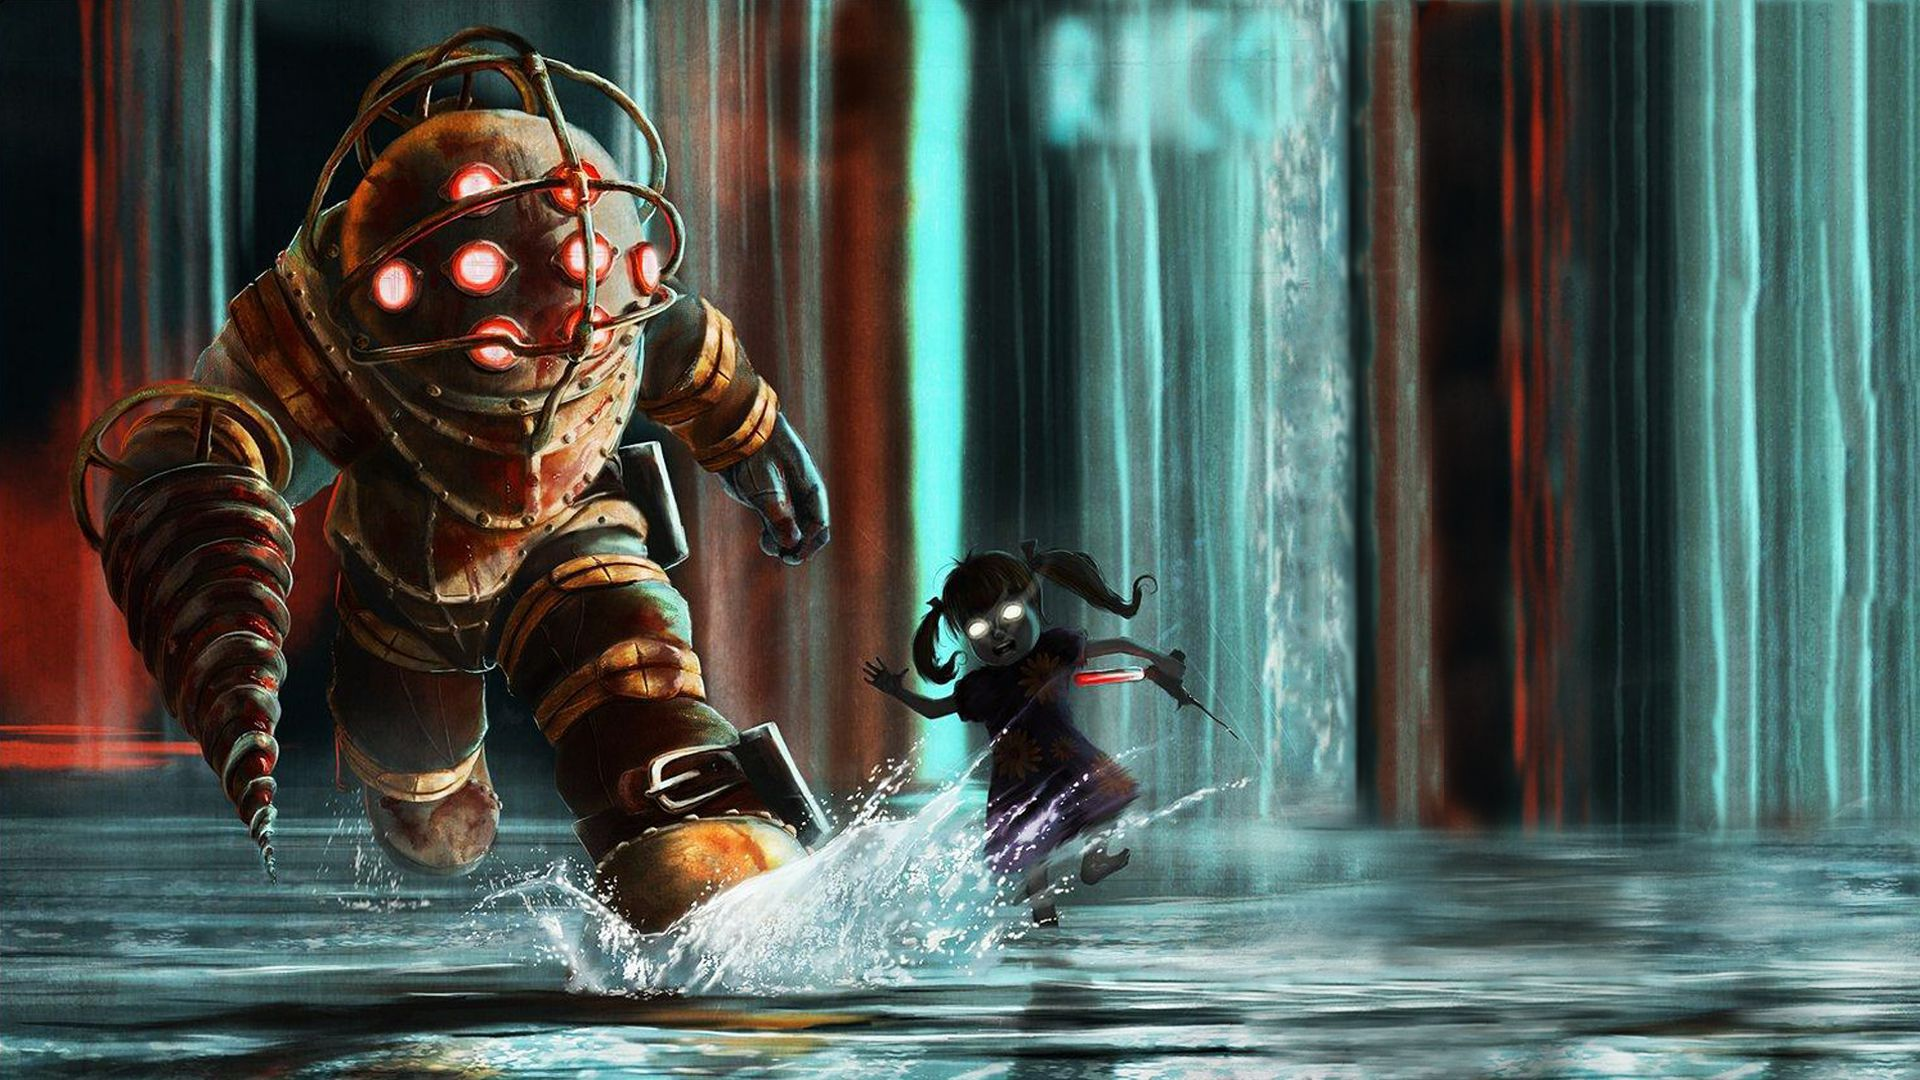 Bioshock HD Wallpaper